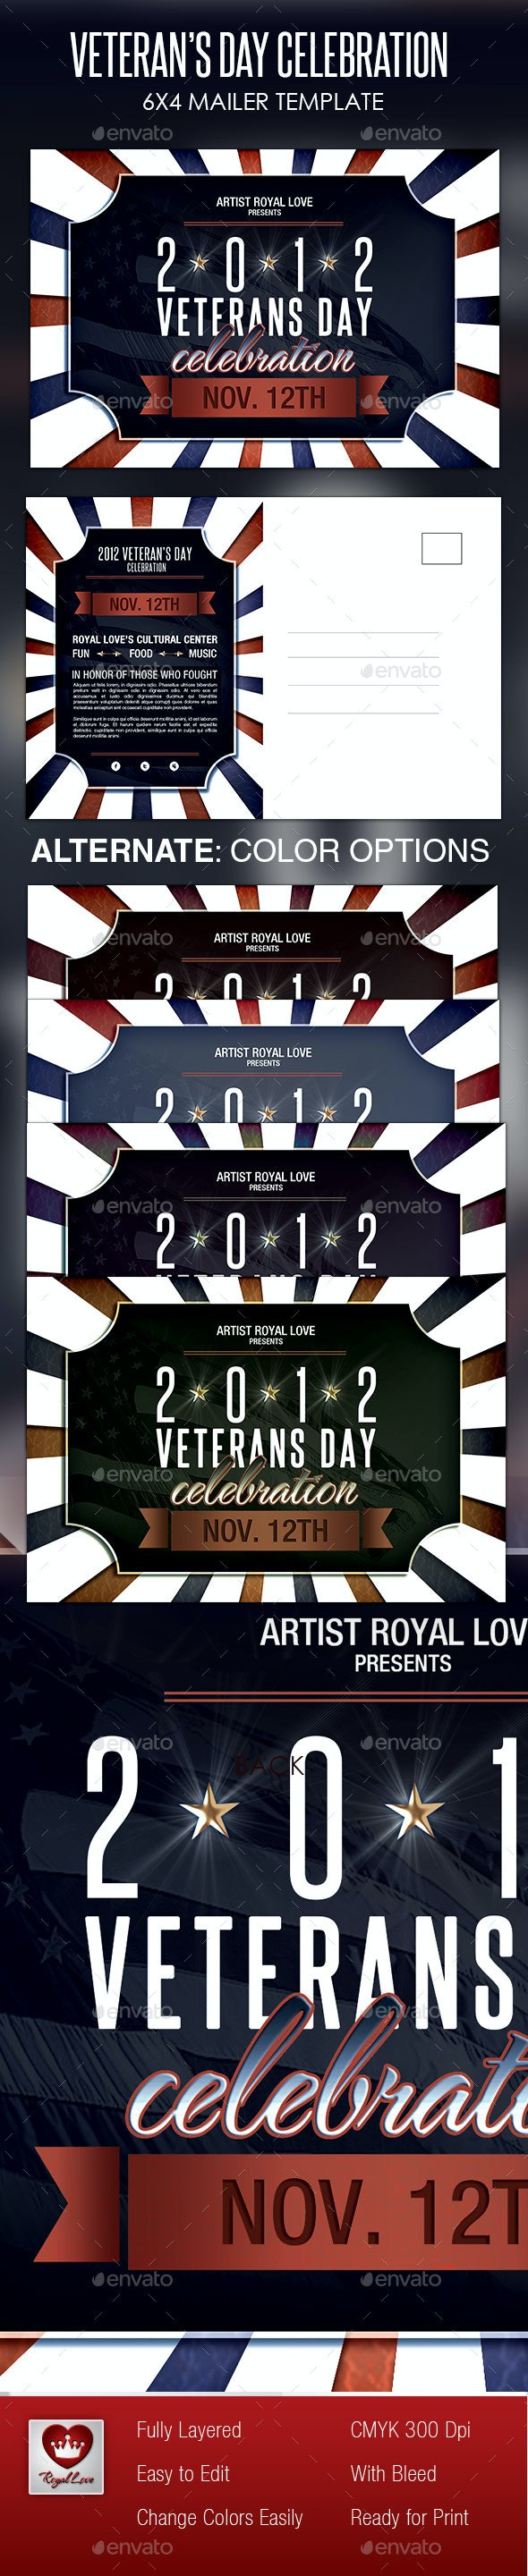 Veterans Day Celebration Mailer - Holiday Greeting Cards